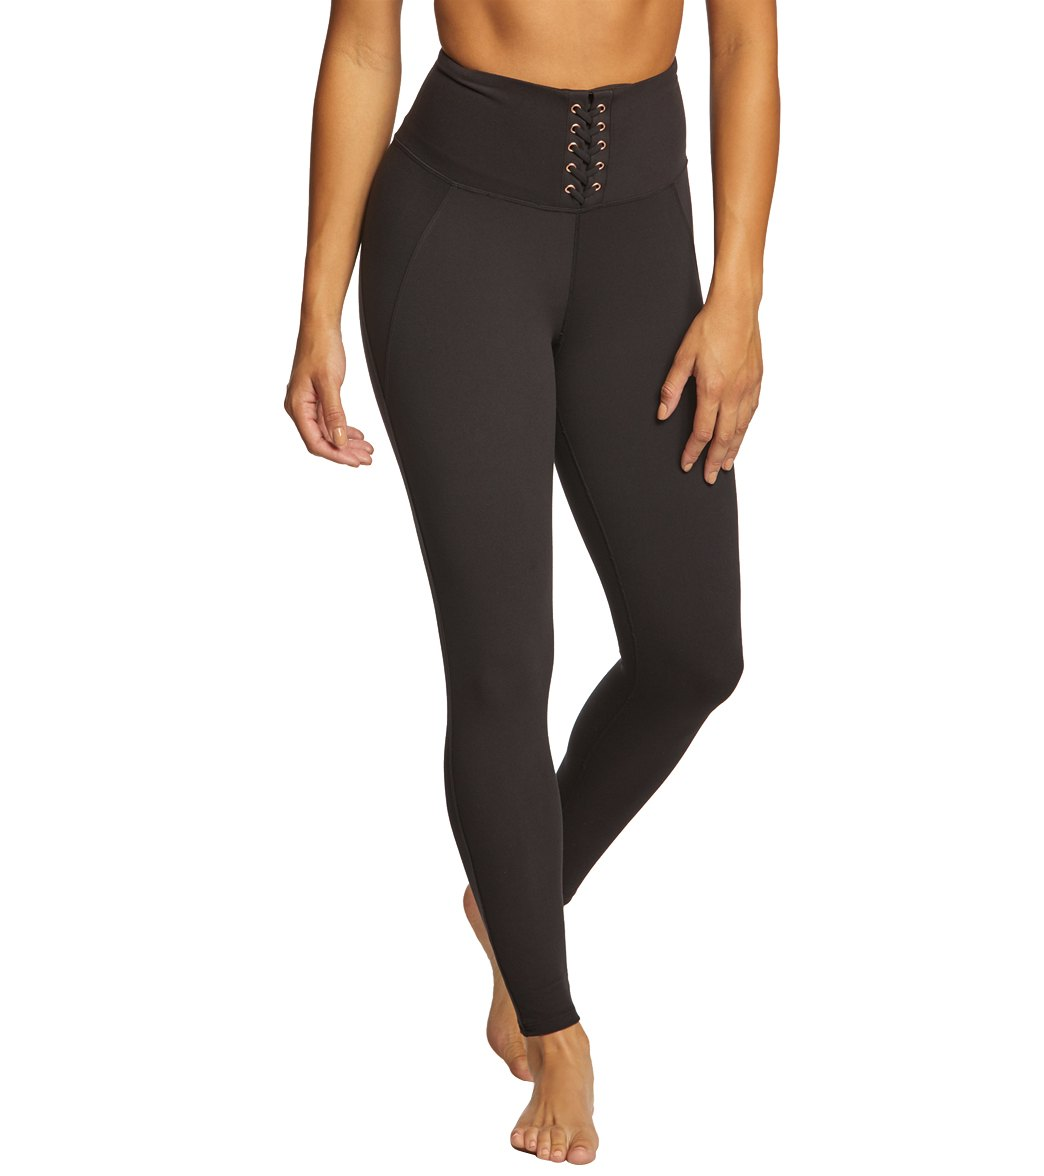 ee6f5a20f29289 Betsey Johnson Performance High Waisted Lace Up 7/8 Yoga Leggings at  SwimOutlet.com - Free Shipping